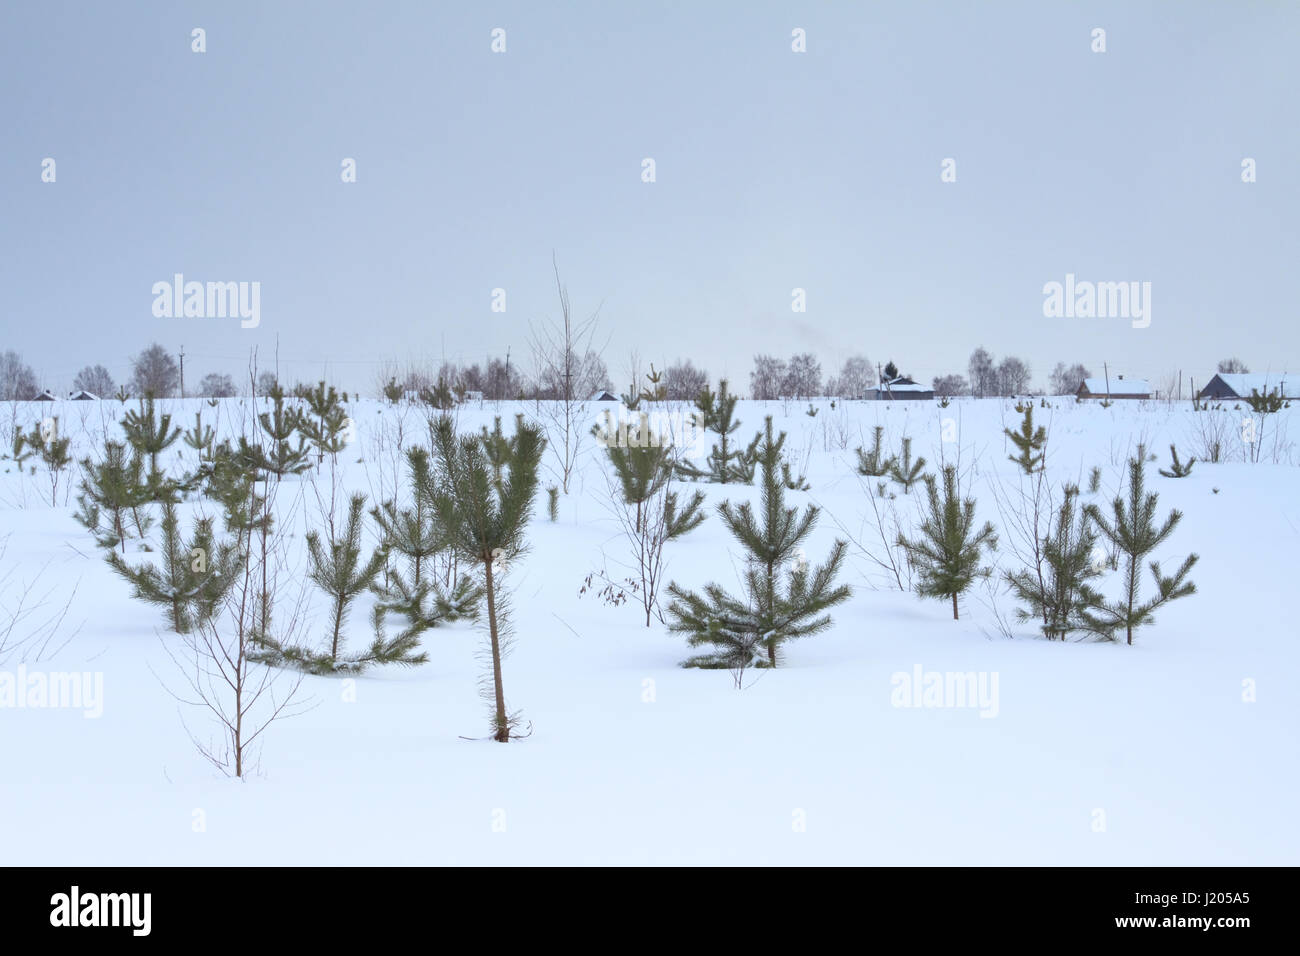 Rural winter scenery with a view of small spruces and a village in the distance - Stock Image